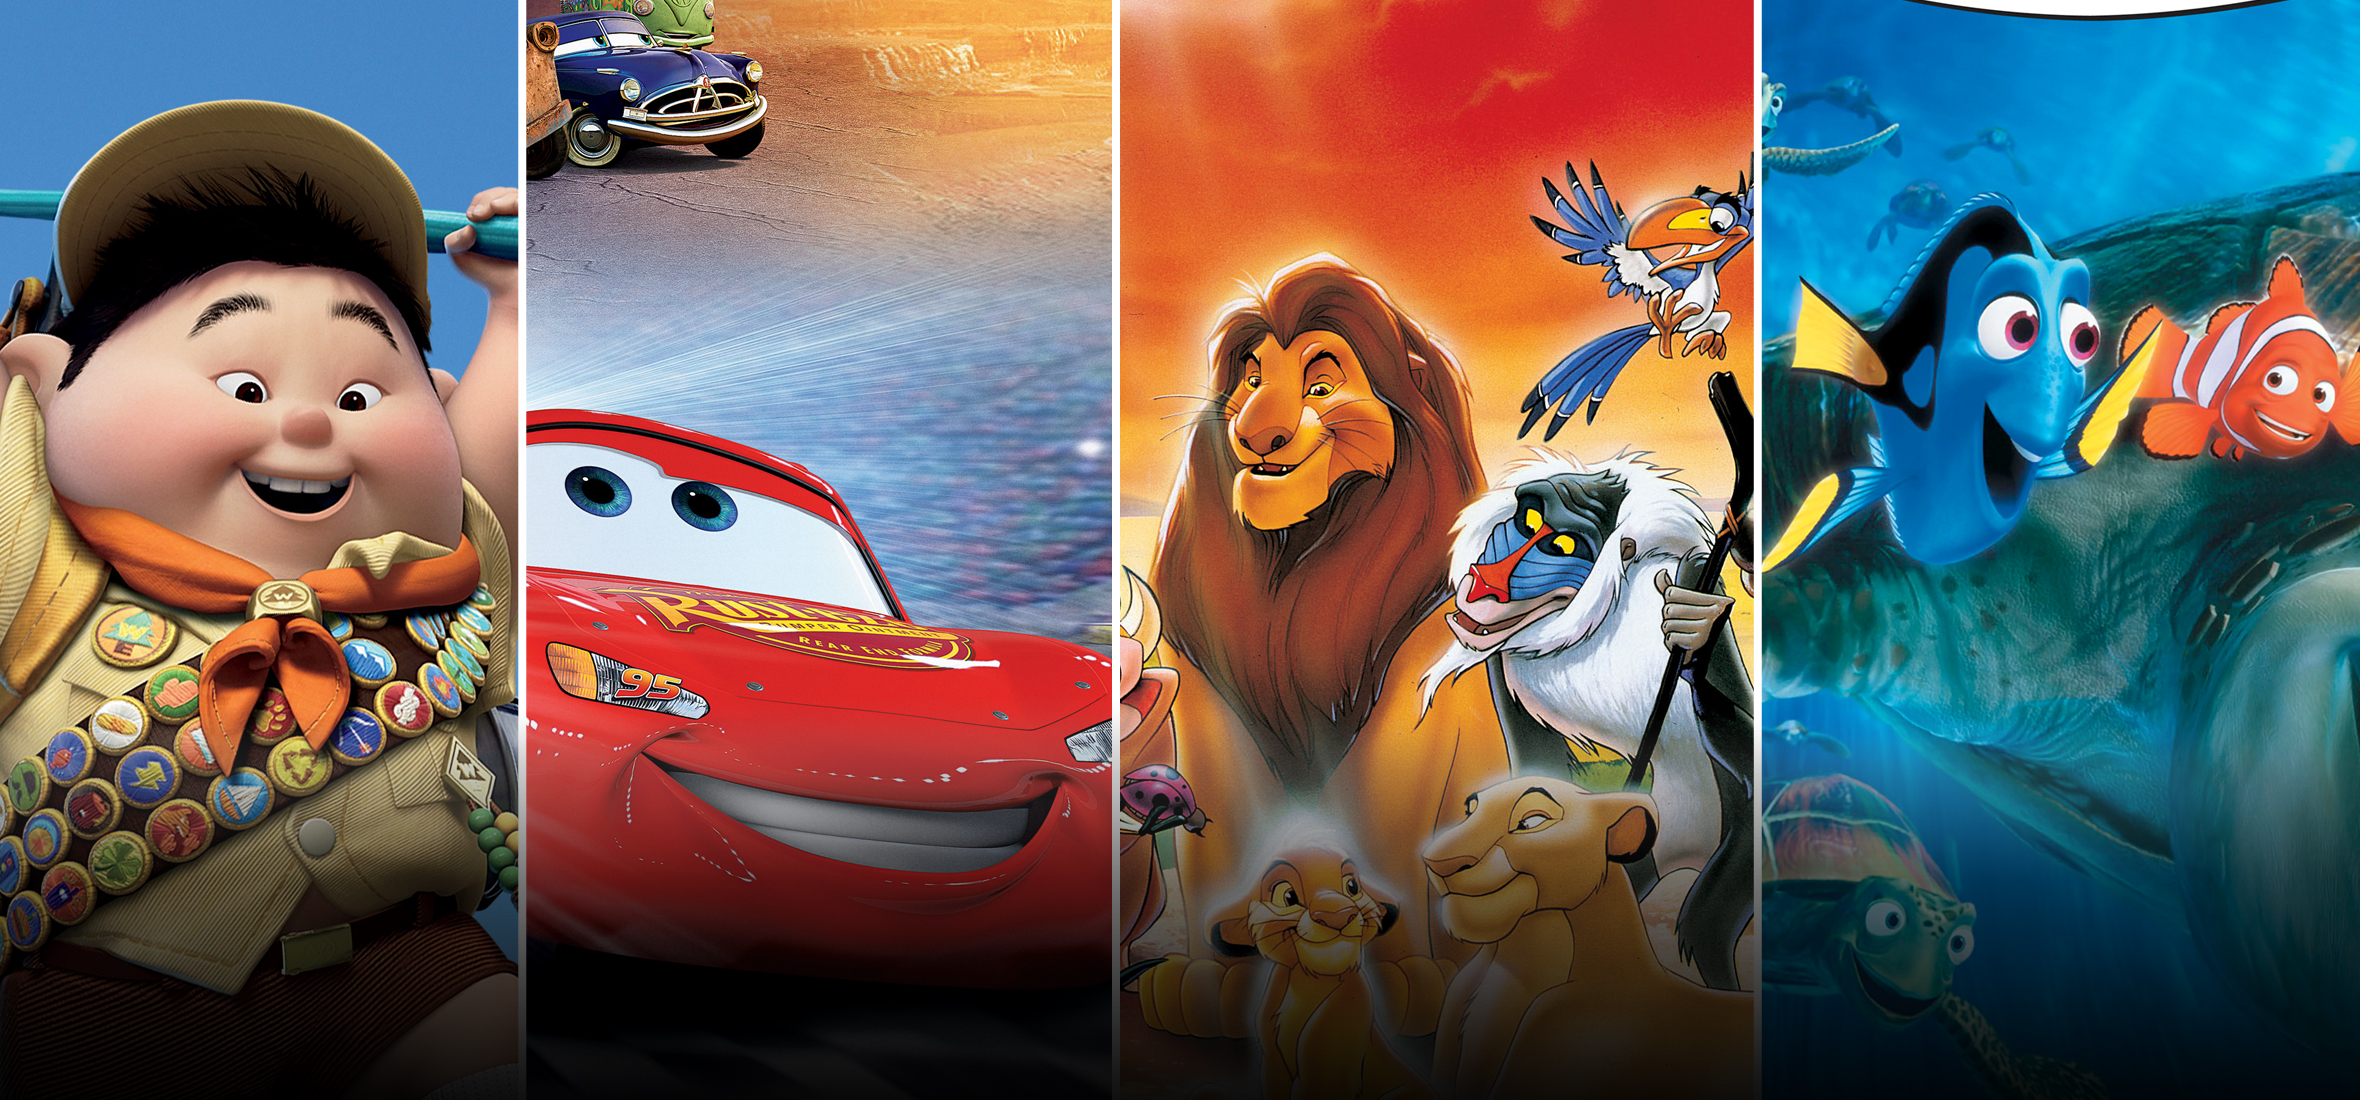 disney movies at the library � campbell county public library